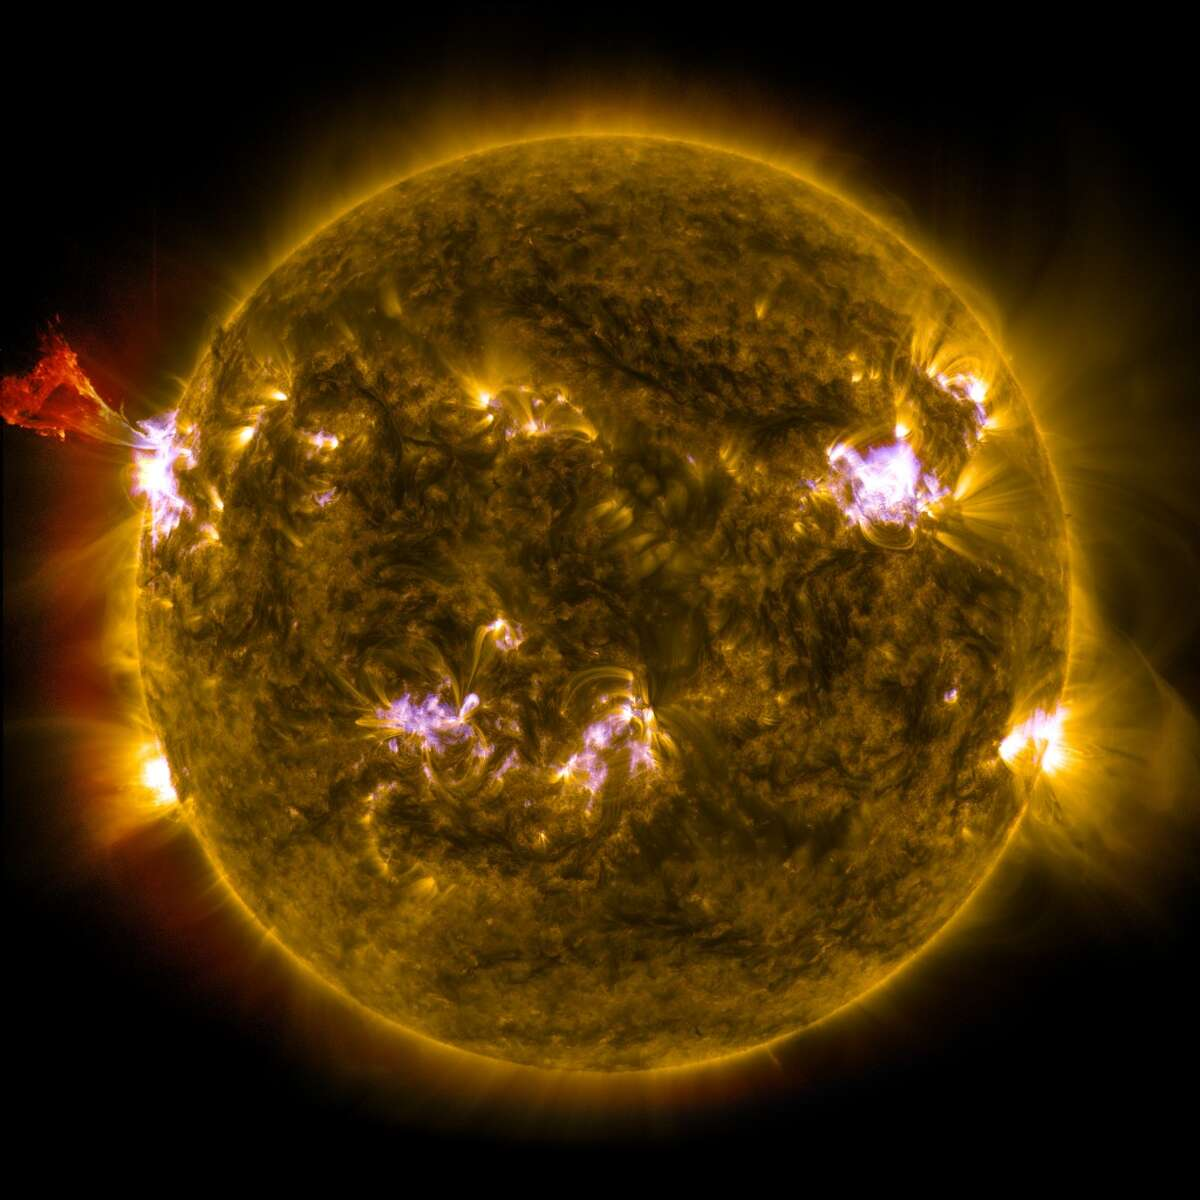 A burst of solar material leaps off the left side of the sun in what's known as a prominence eruption. This image combines three images from NASA's Solar Dynamics Observatory captured on May 3, 2013, at 1:45 pm EDT, just as an M-class solar flare from the same region was subsiding. The images include light from the 131-, 171- and 304-angstrom wavelengths.